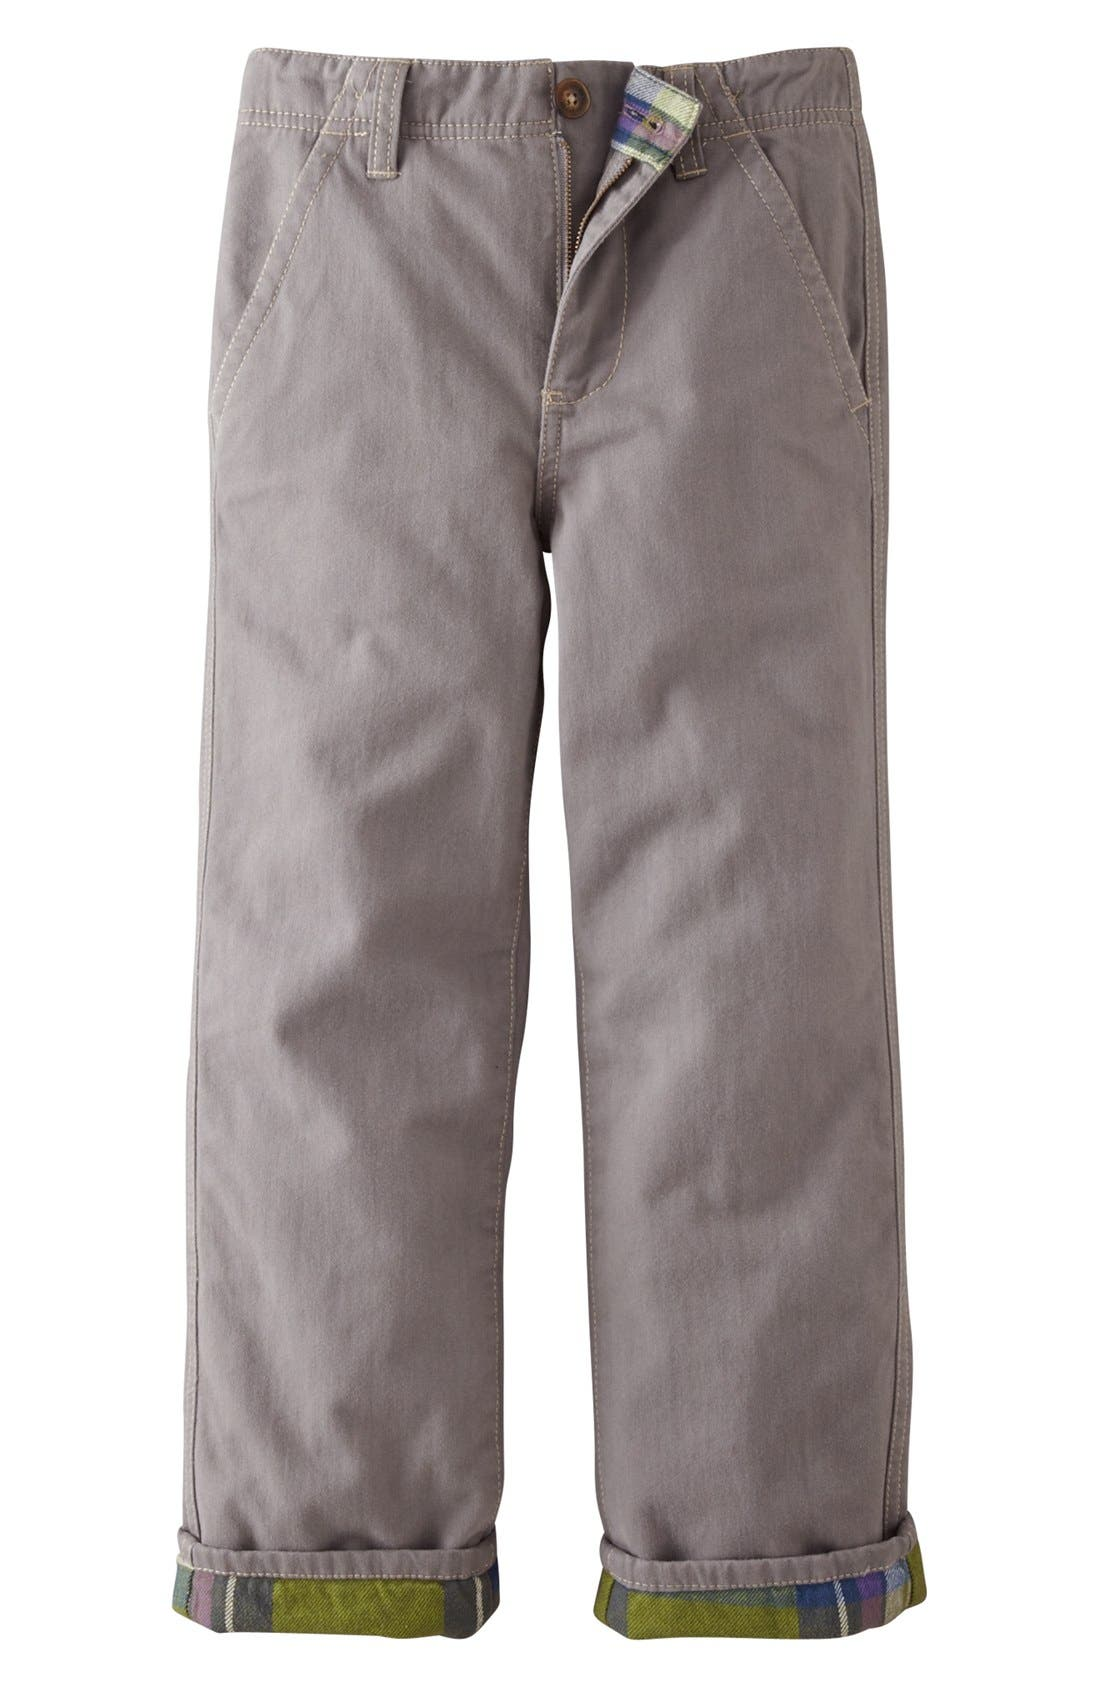 Alternate Image 1 Selected - Mini Boden Lined Chinos (Toddler Boys)